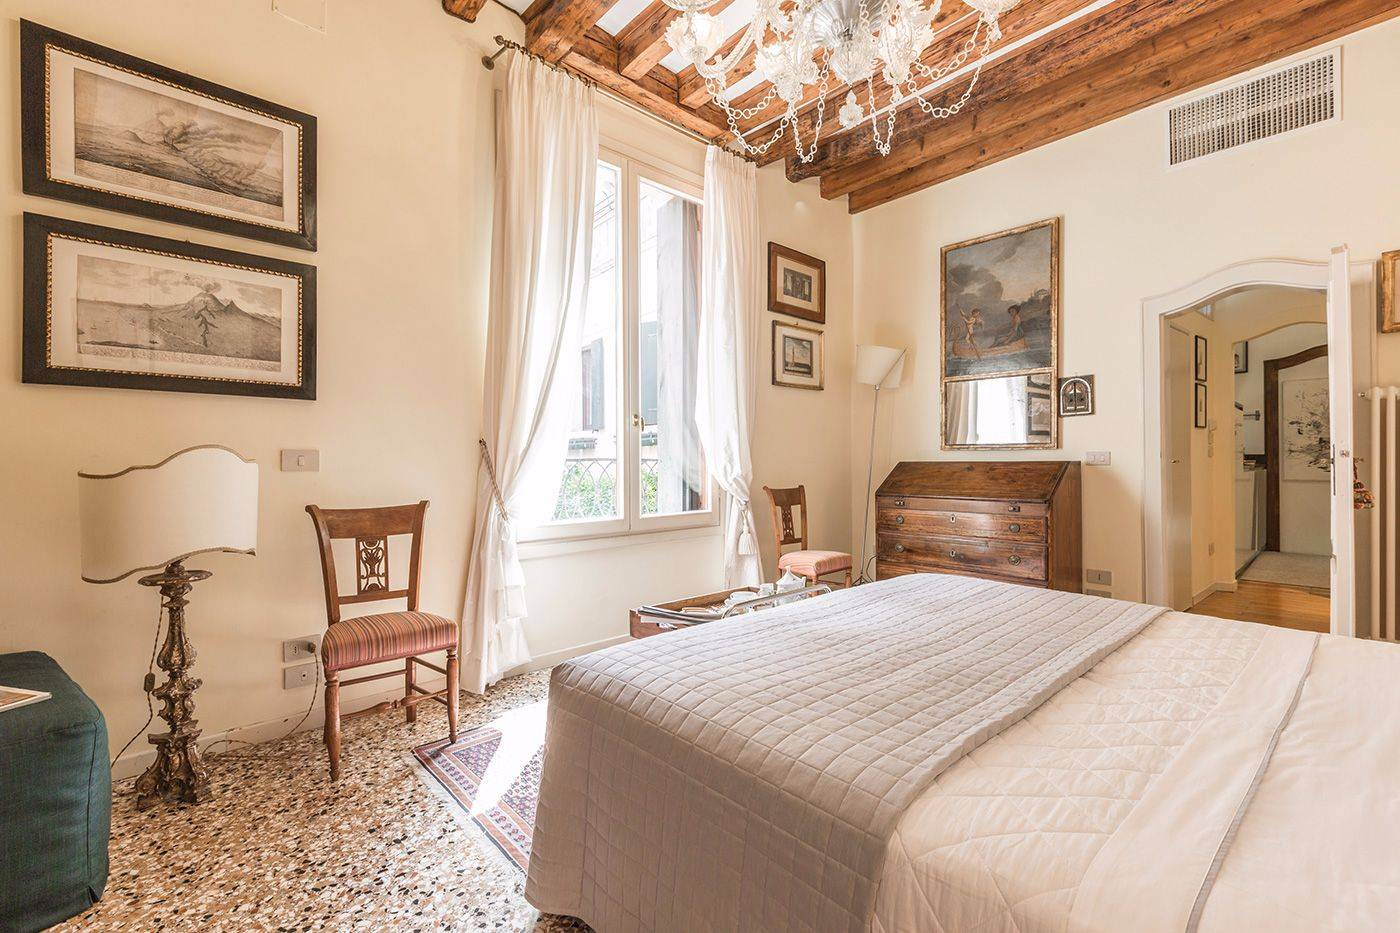 very spacious master bedroom full of natural light and nicely furnished